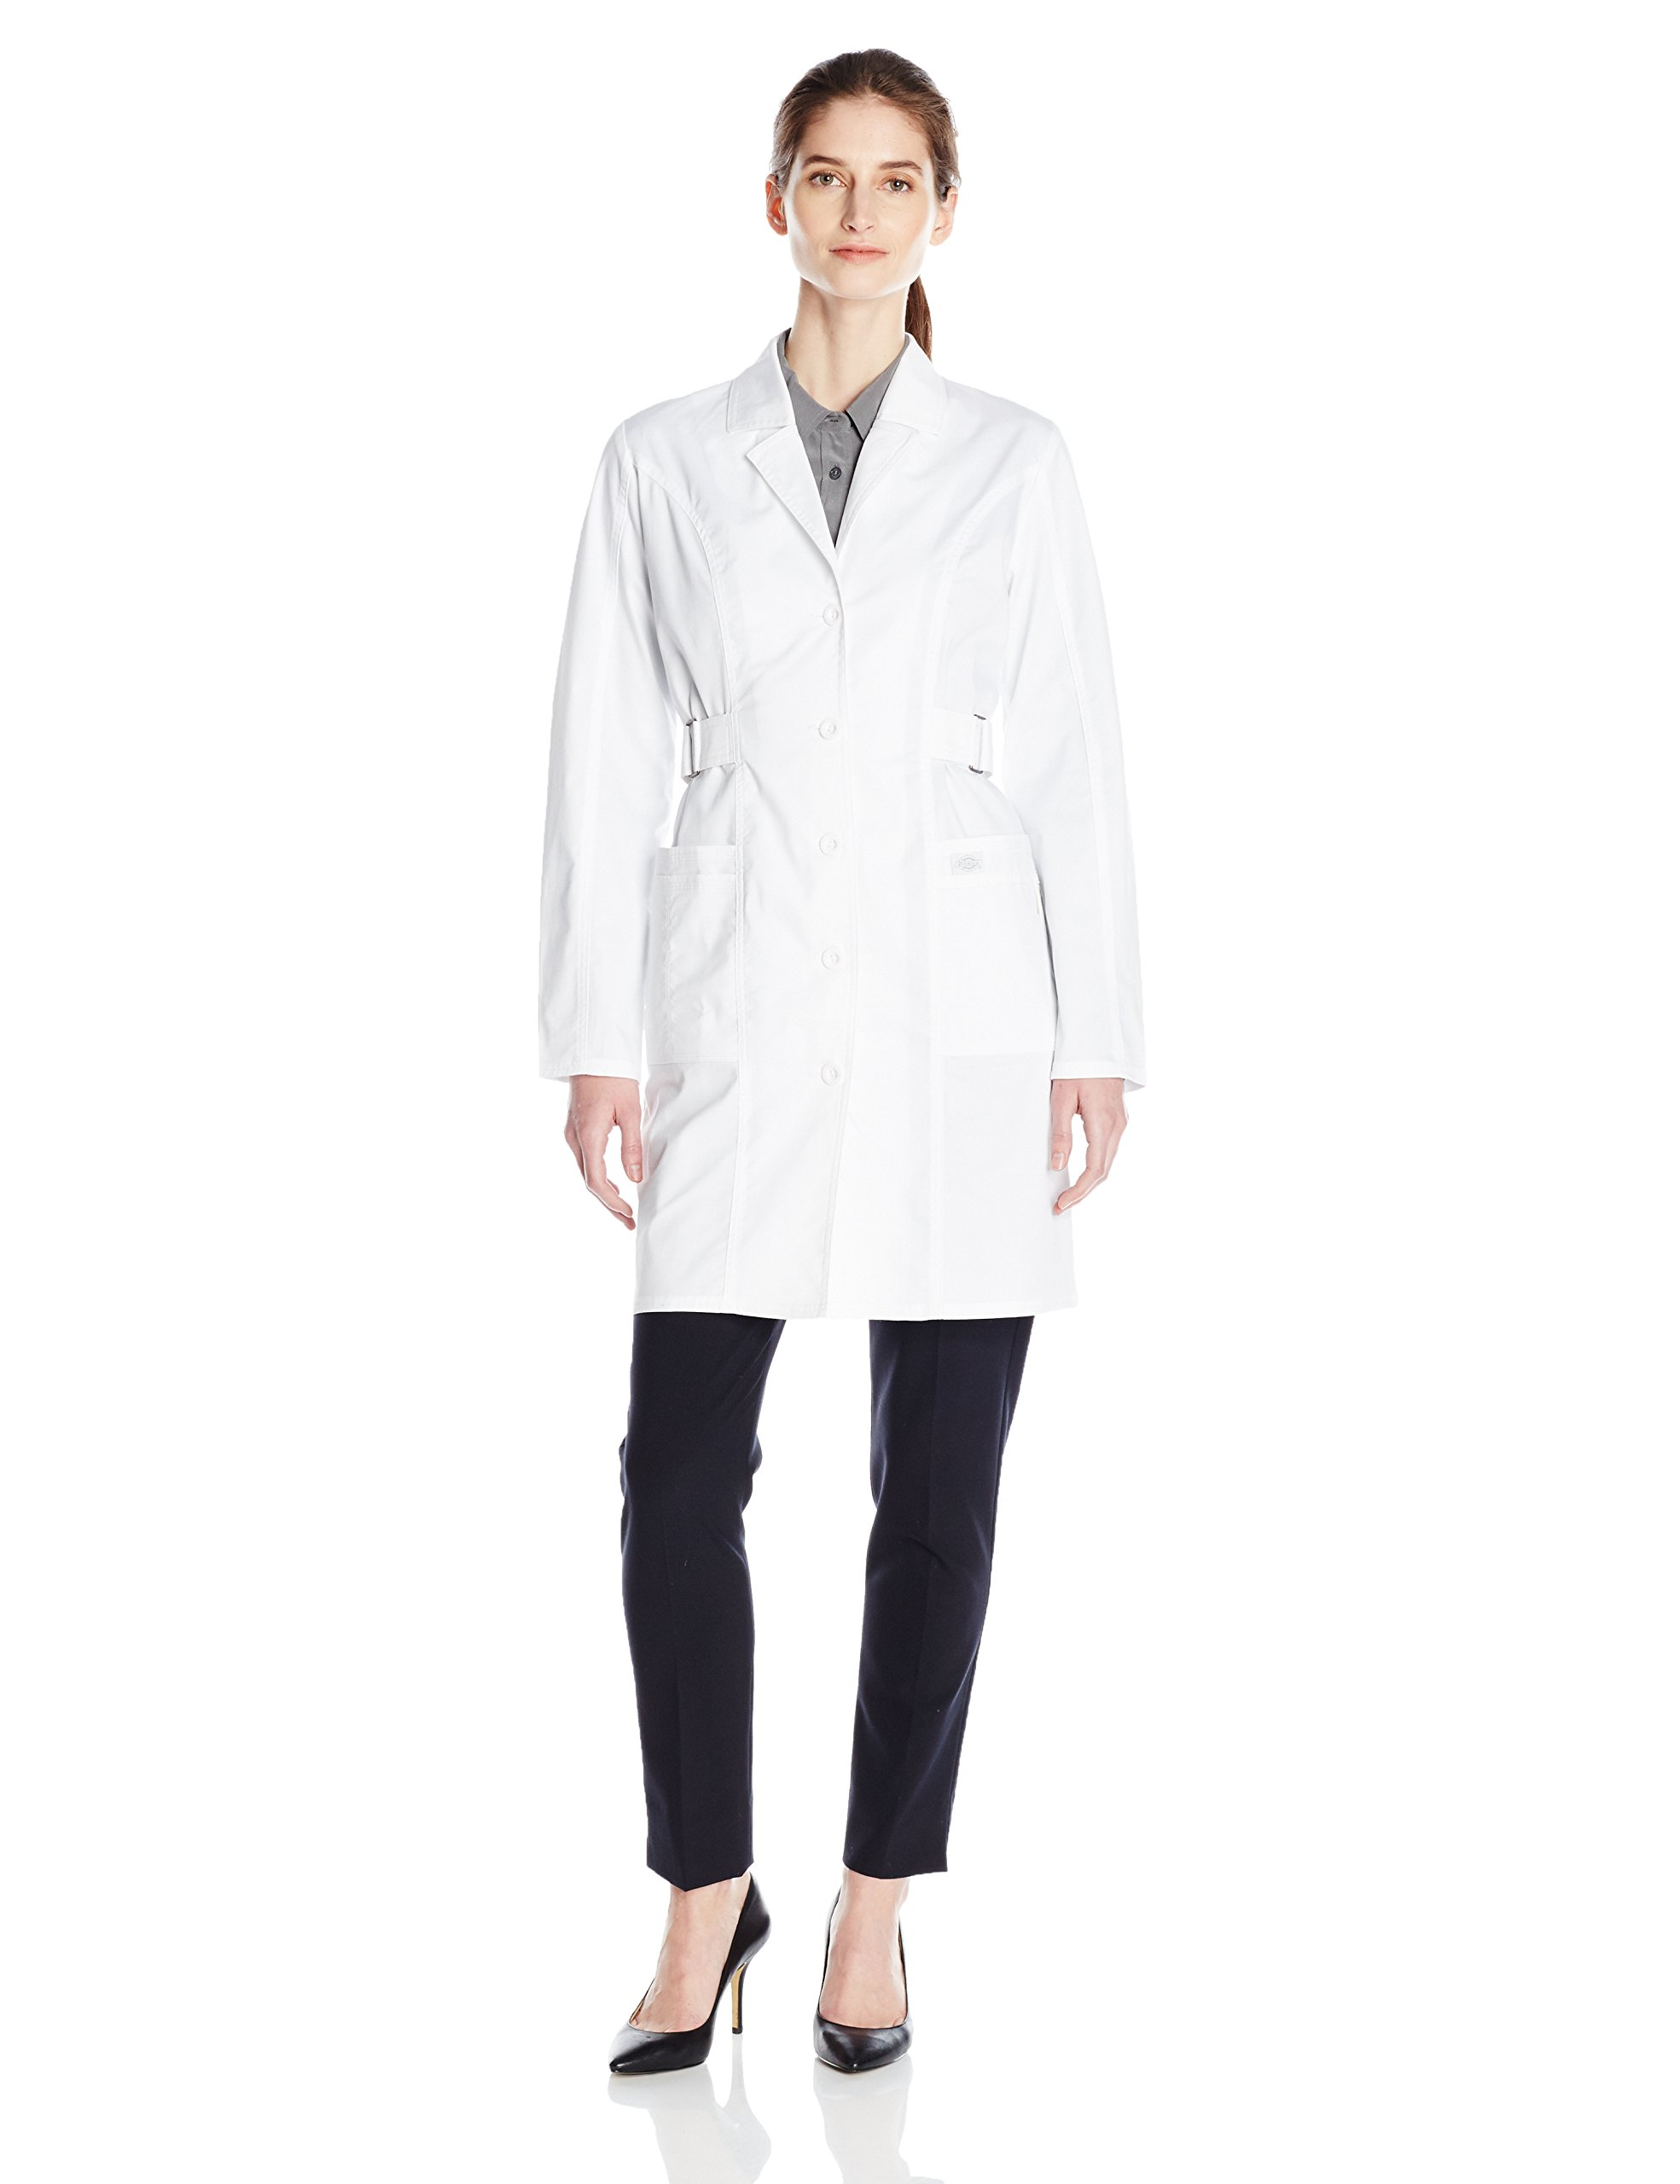 Dickies Women's 36 Inch Jr. Fit Lab Coat, White, Large